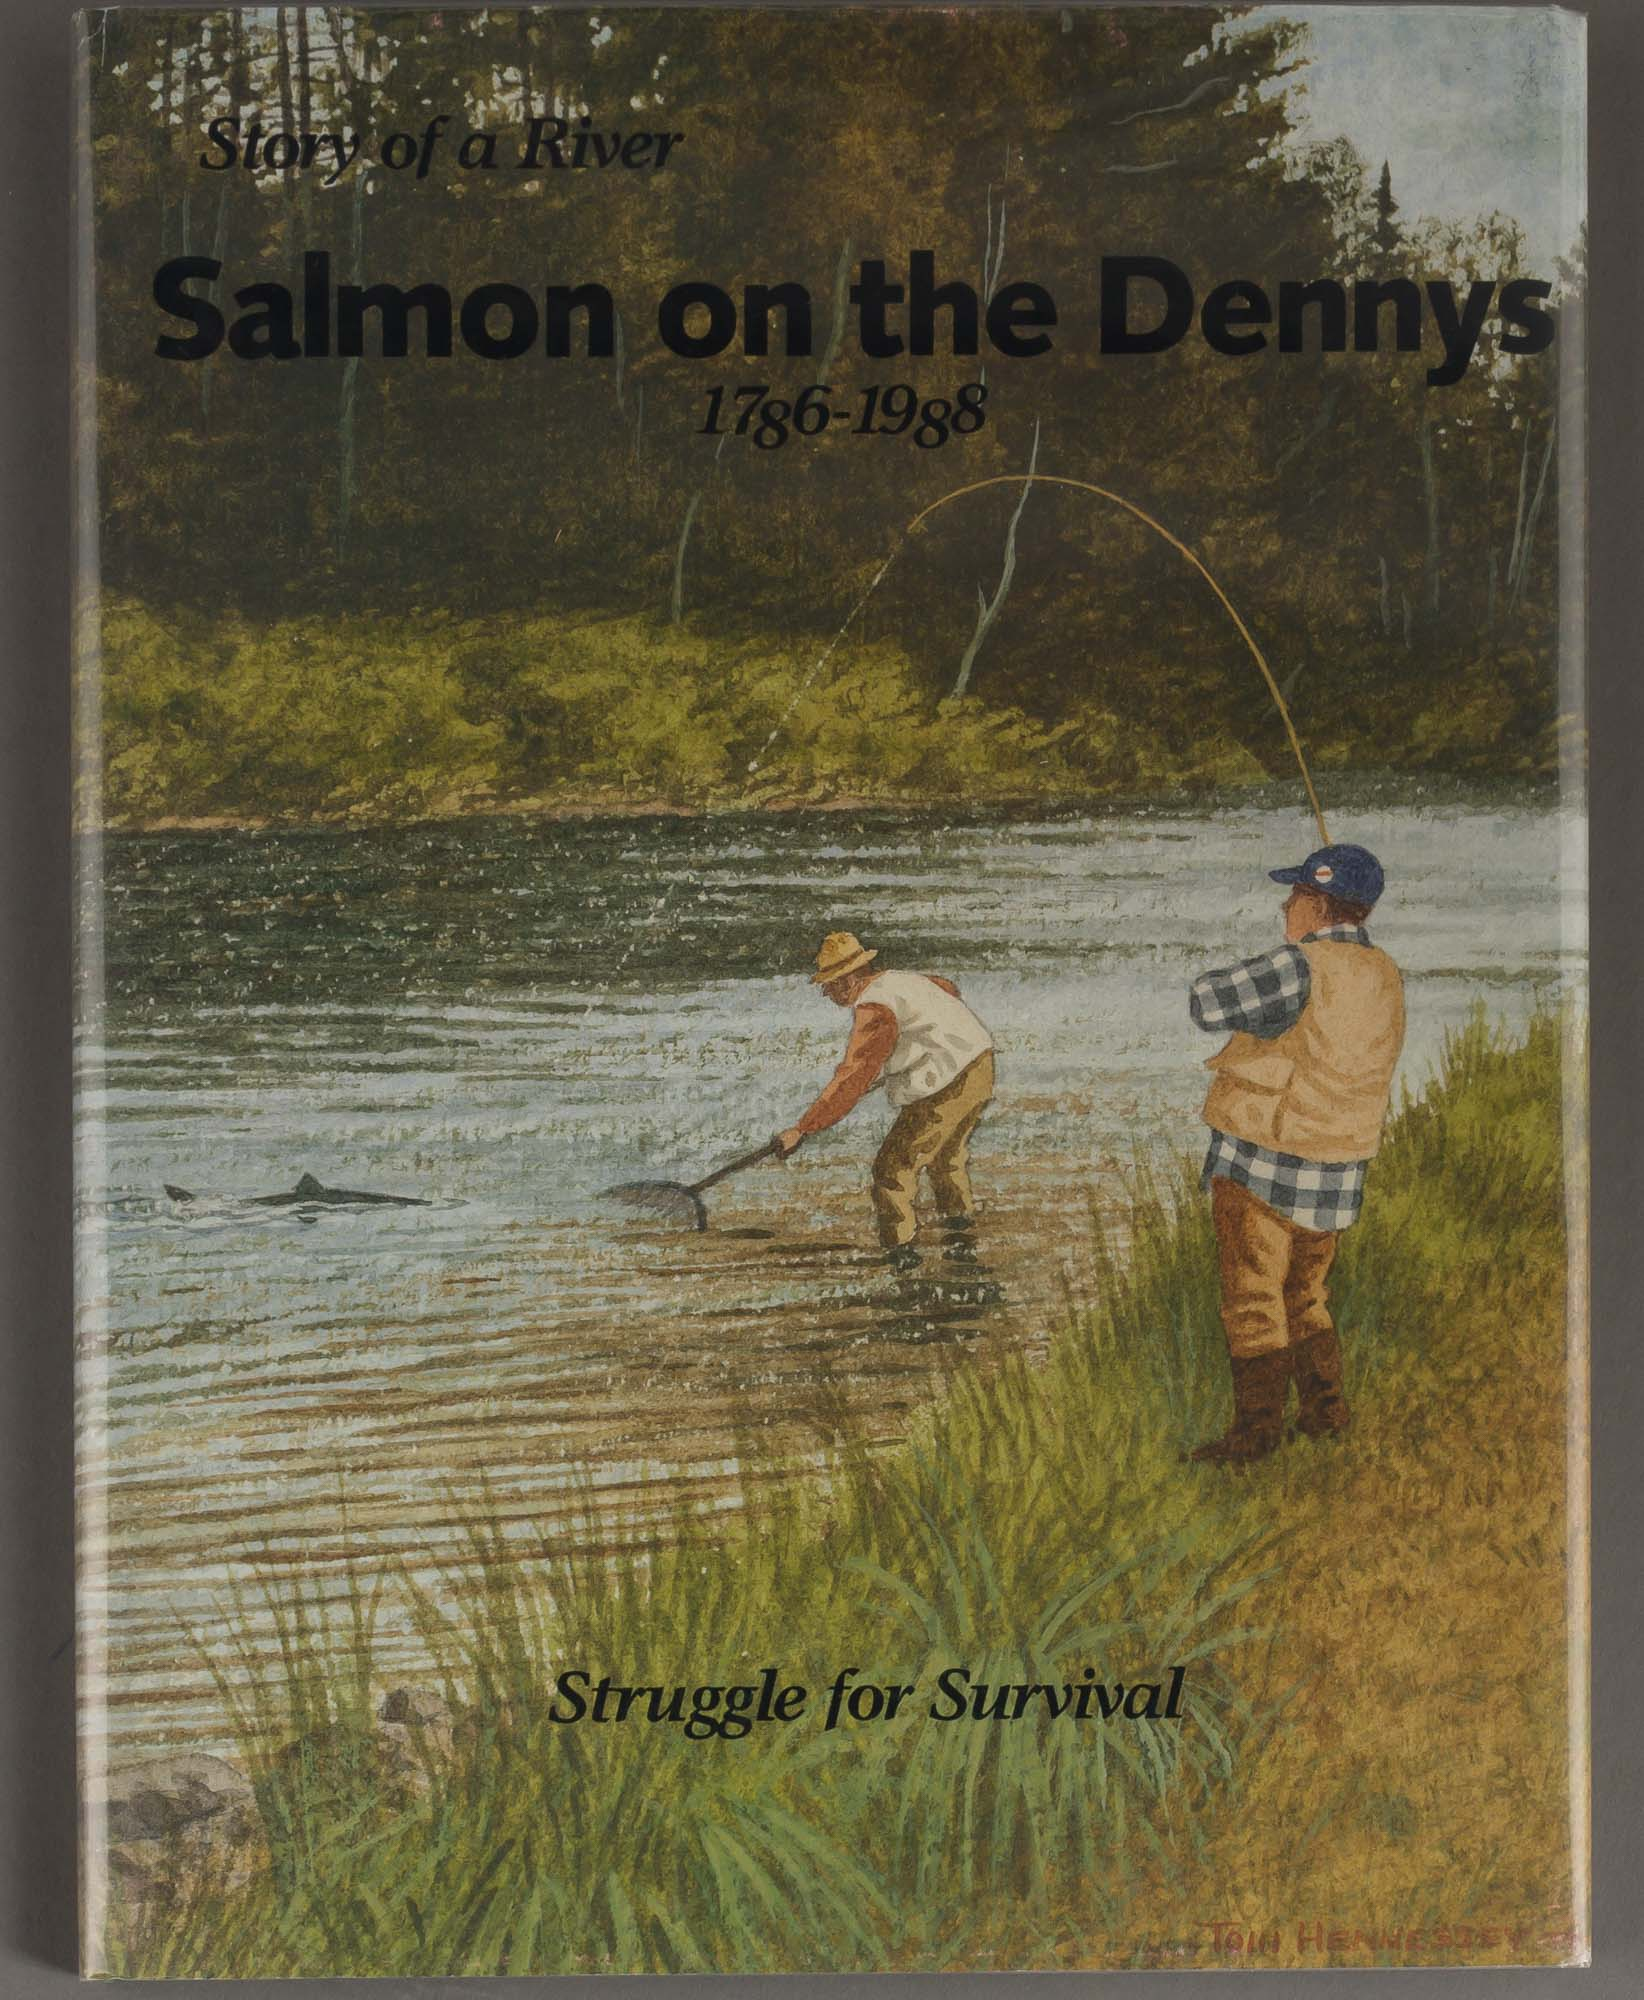 Lot image - BARTLETT, ED and ROBINSON, RAY  The Story of a River: Salmon on the Dennys 1786-1988. Struggle for Survival.